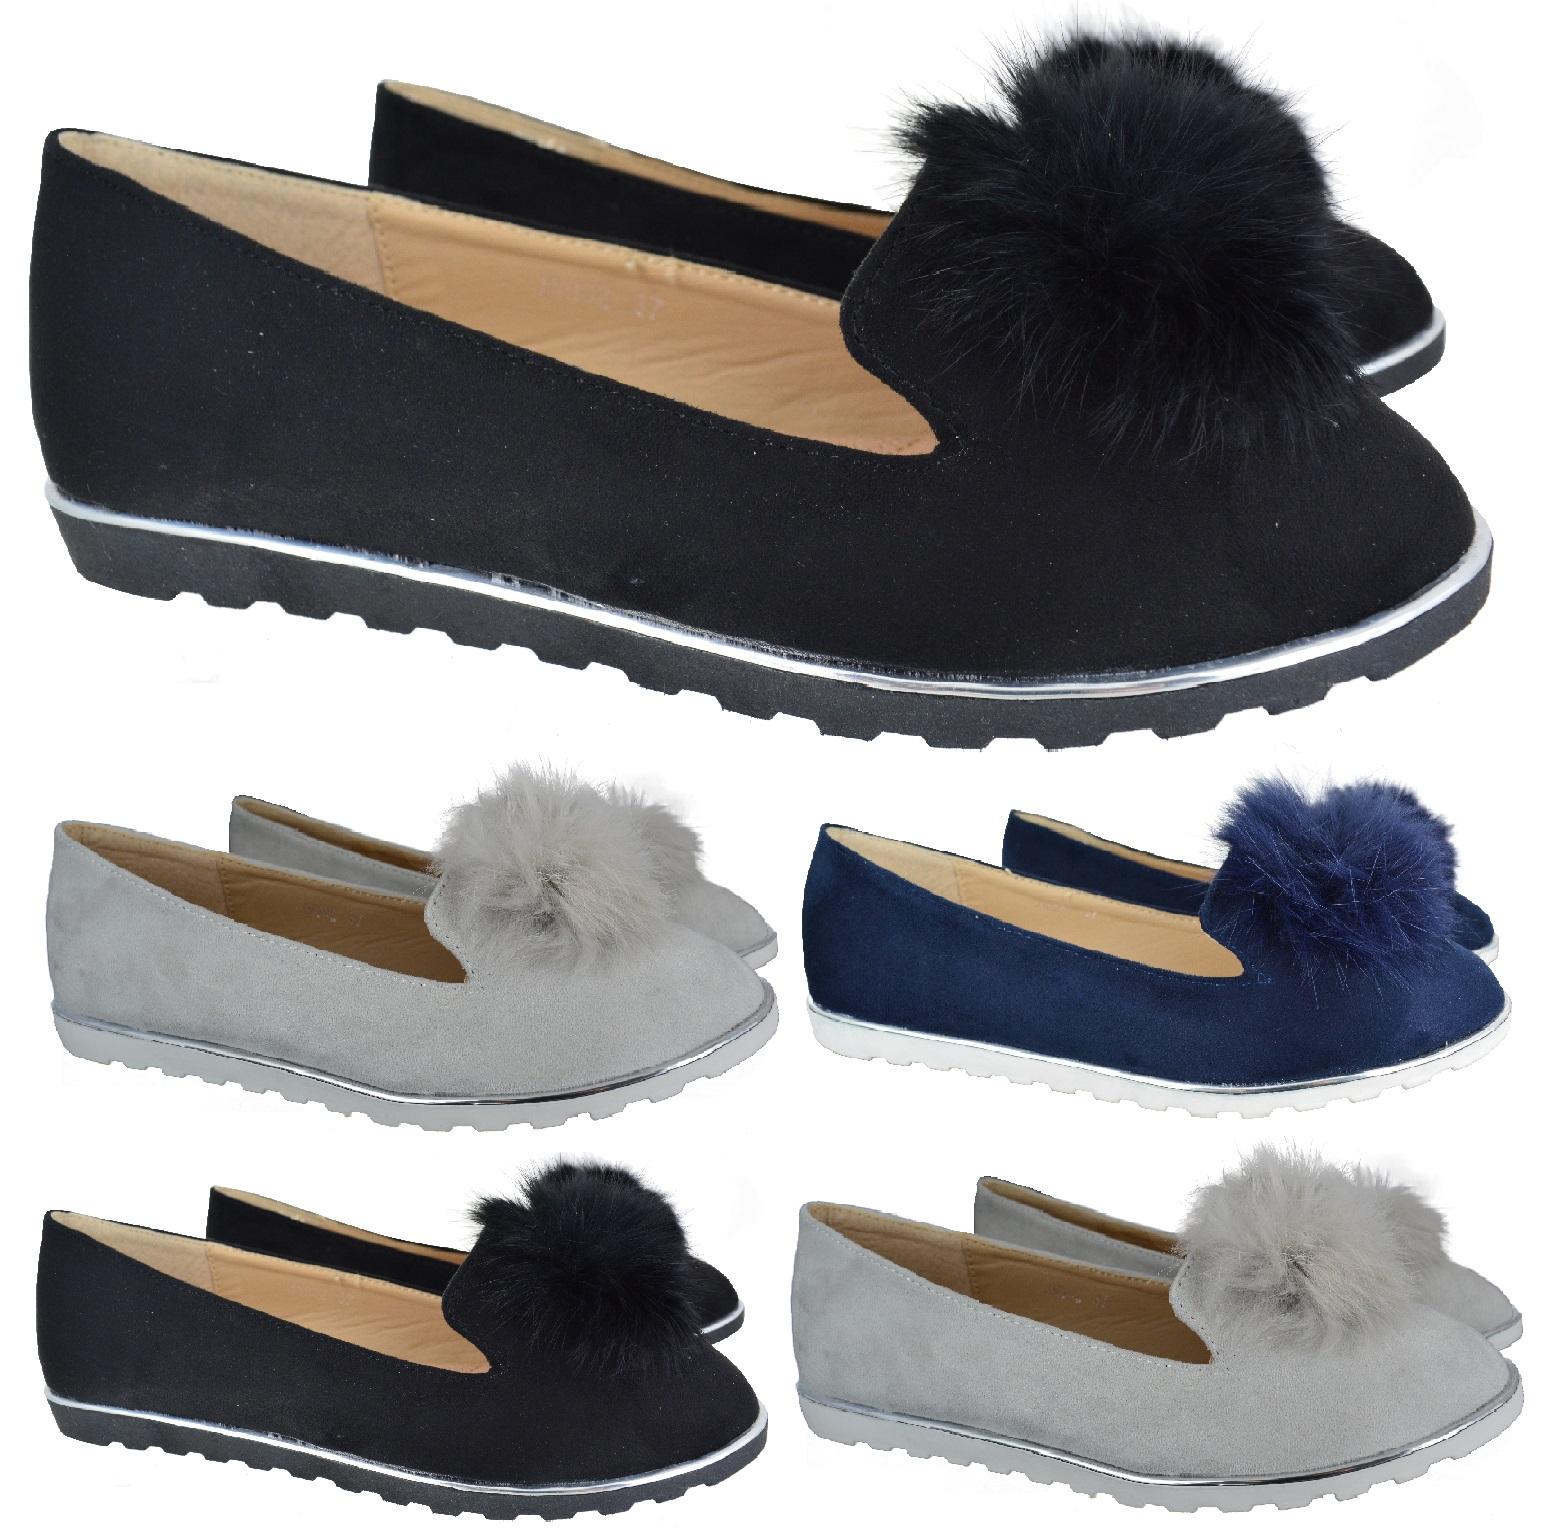 d13ce1a75ee Sentinel WOMENS LADIES FLUFFY POM POM FLAT OFFICE LOAFERS PUMPS BALLET  SHOES SIZE 3-8 NEW